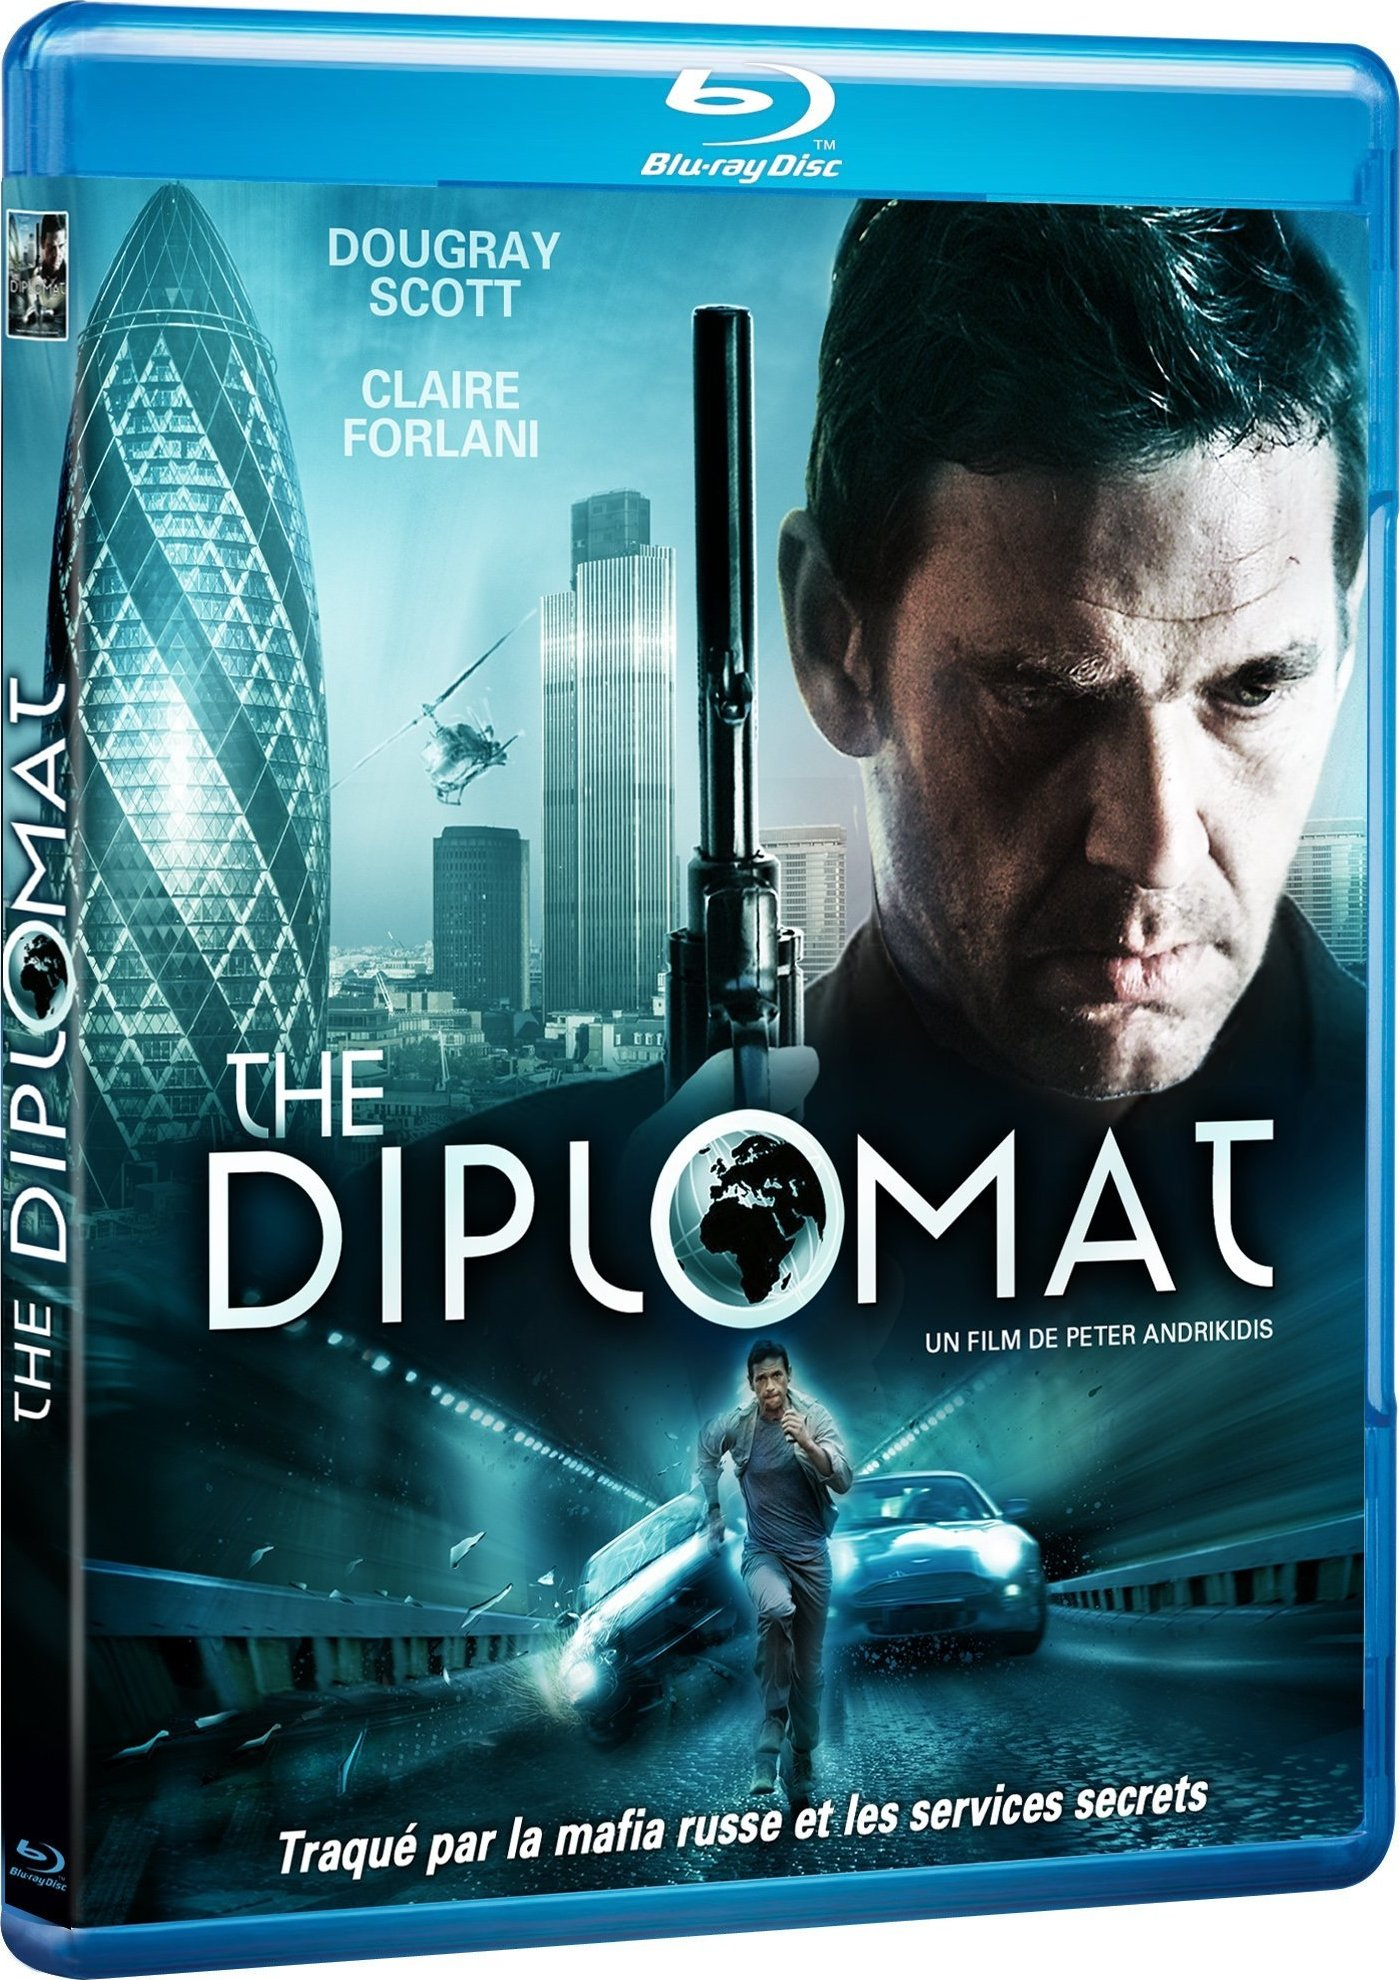 Le diplomate [1CD + AC3] [FRENCH] [BDRIP]